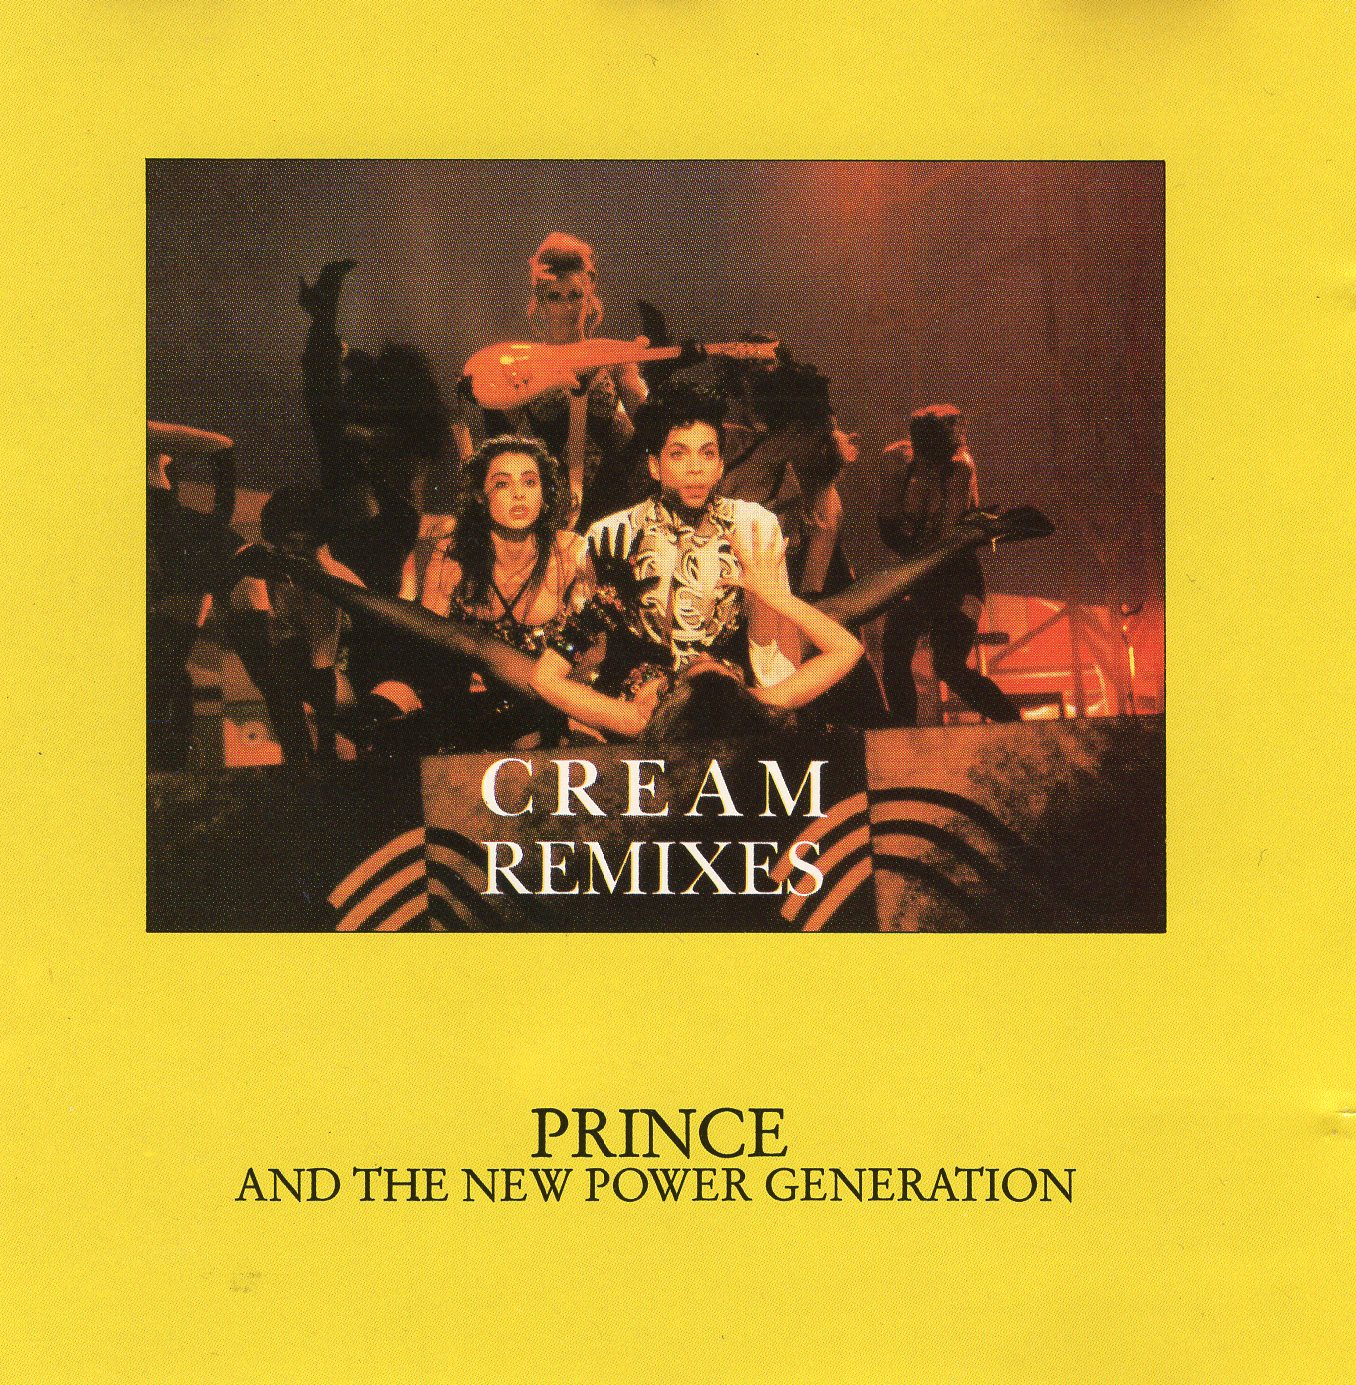 """Prince And The New Power Generation - Cream Remixes"" Prince"